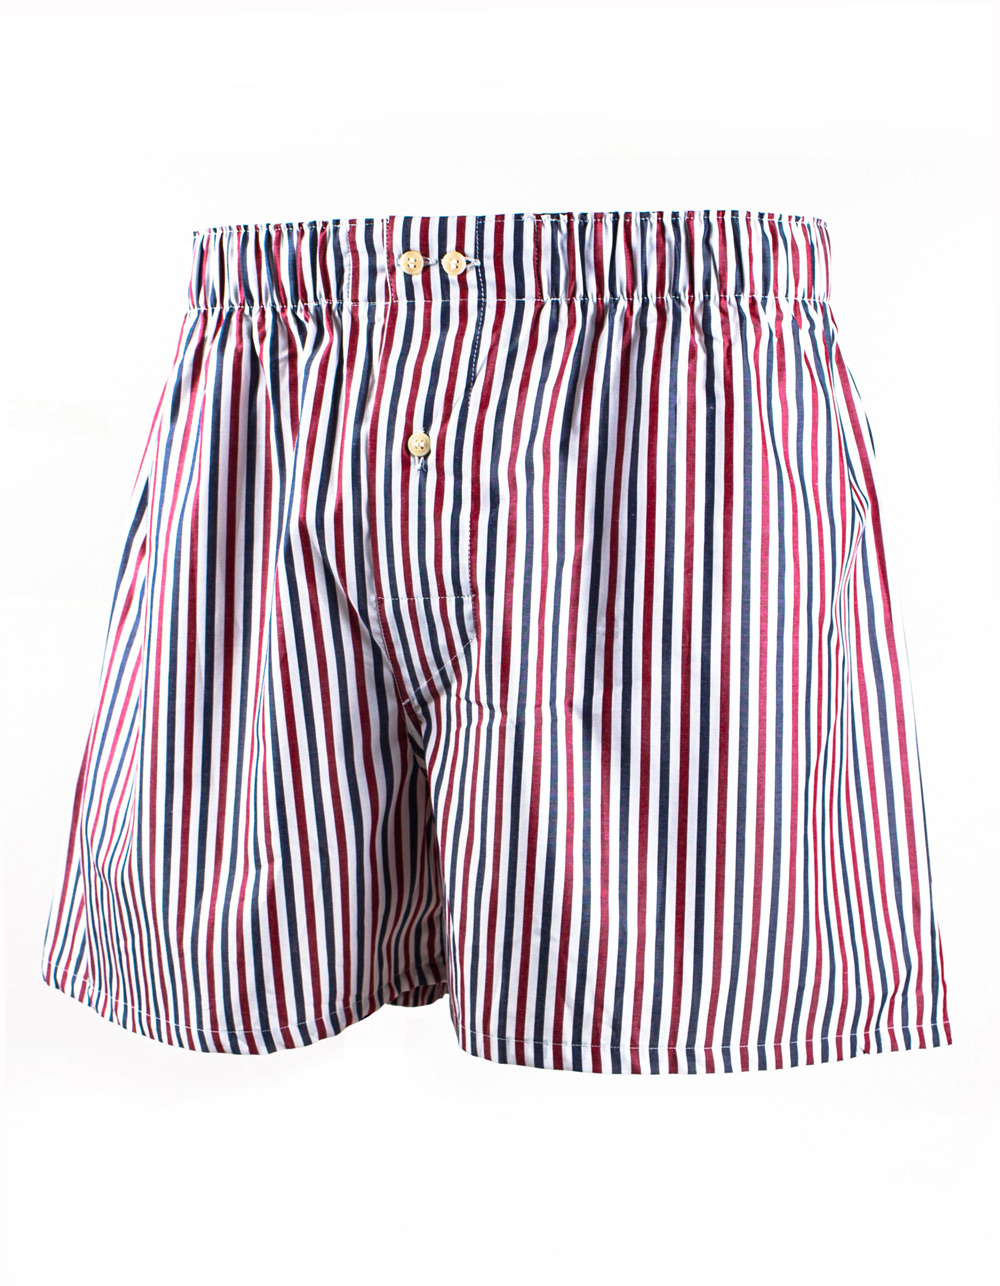 Blue and bordo micro stripes boxer shorts